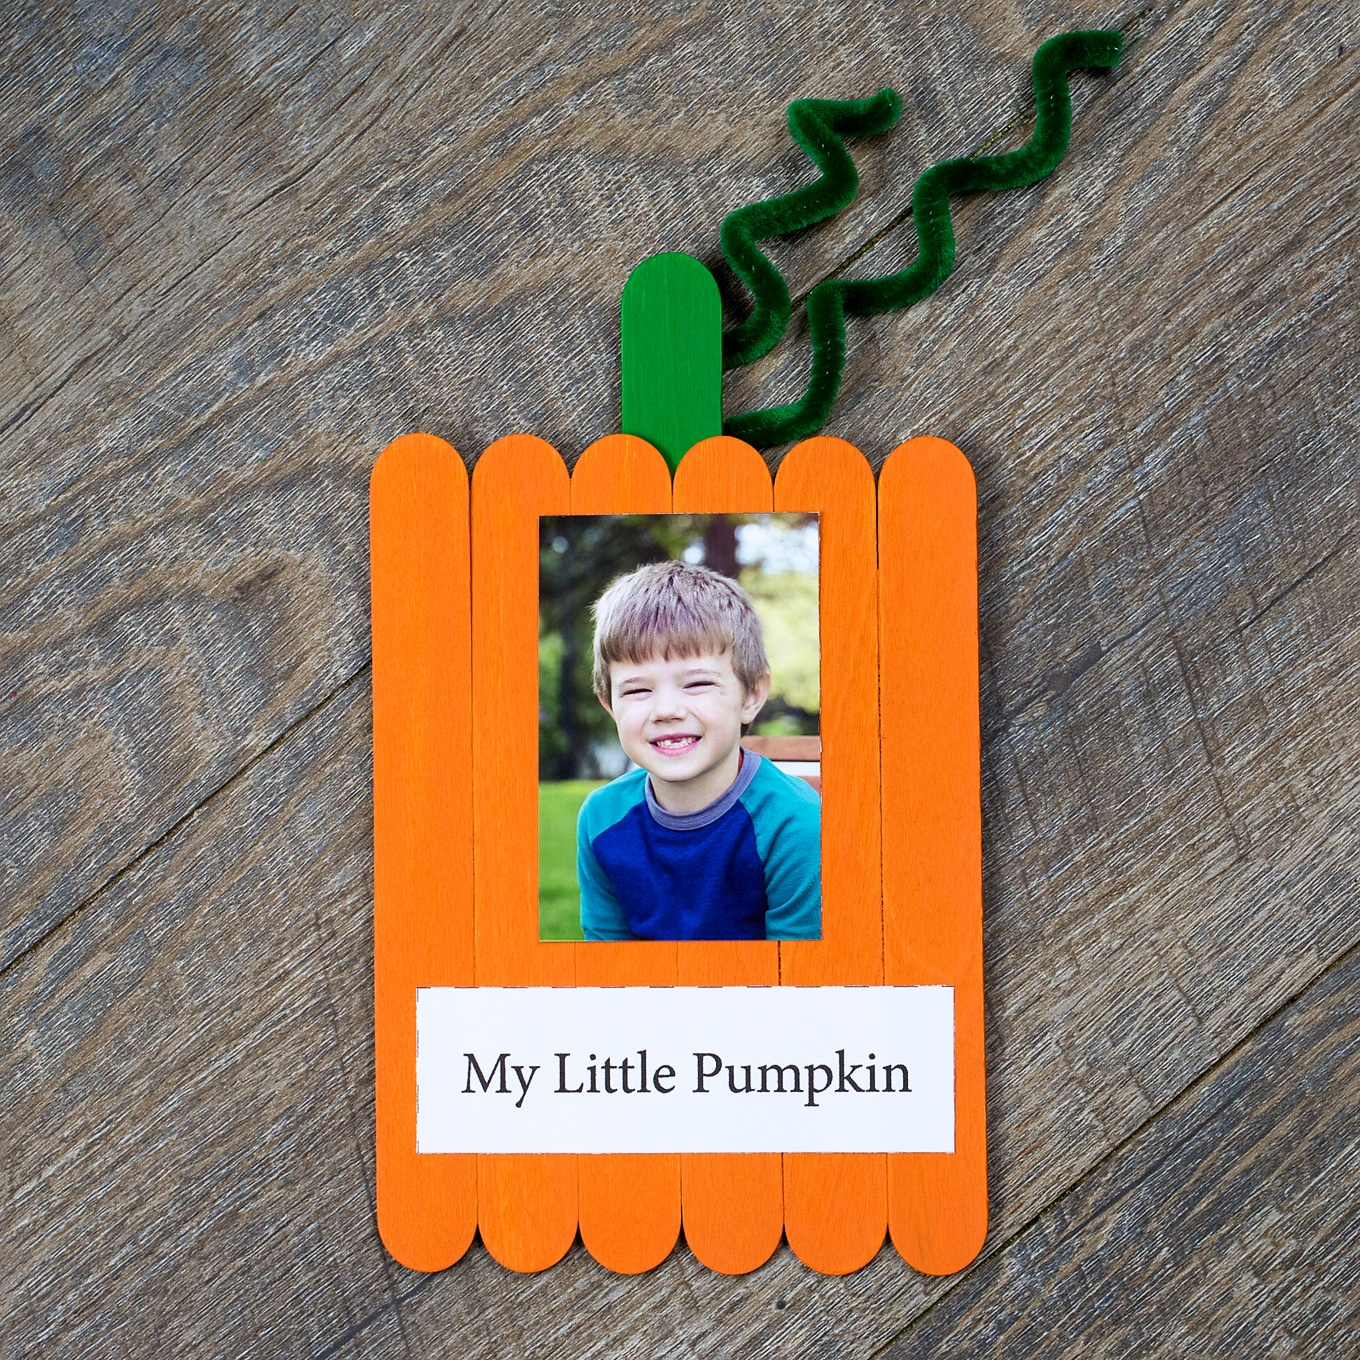 Completed Popsicle stick pumpkin keepsake with child's photo